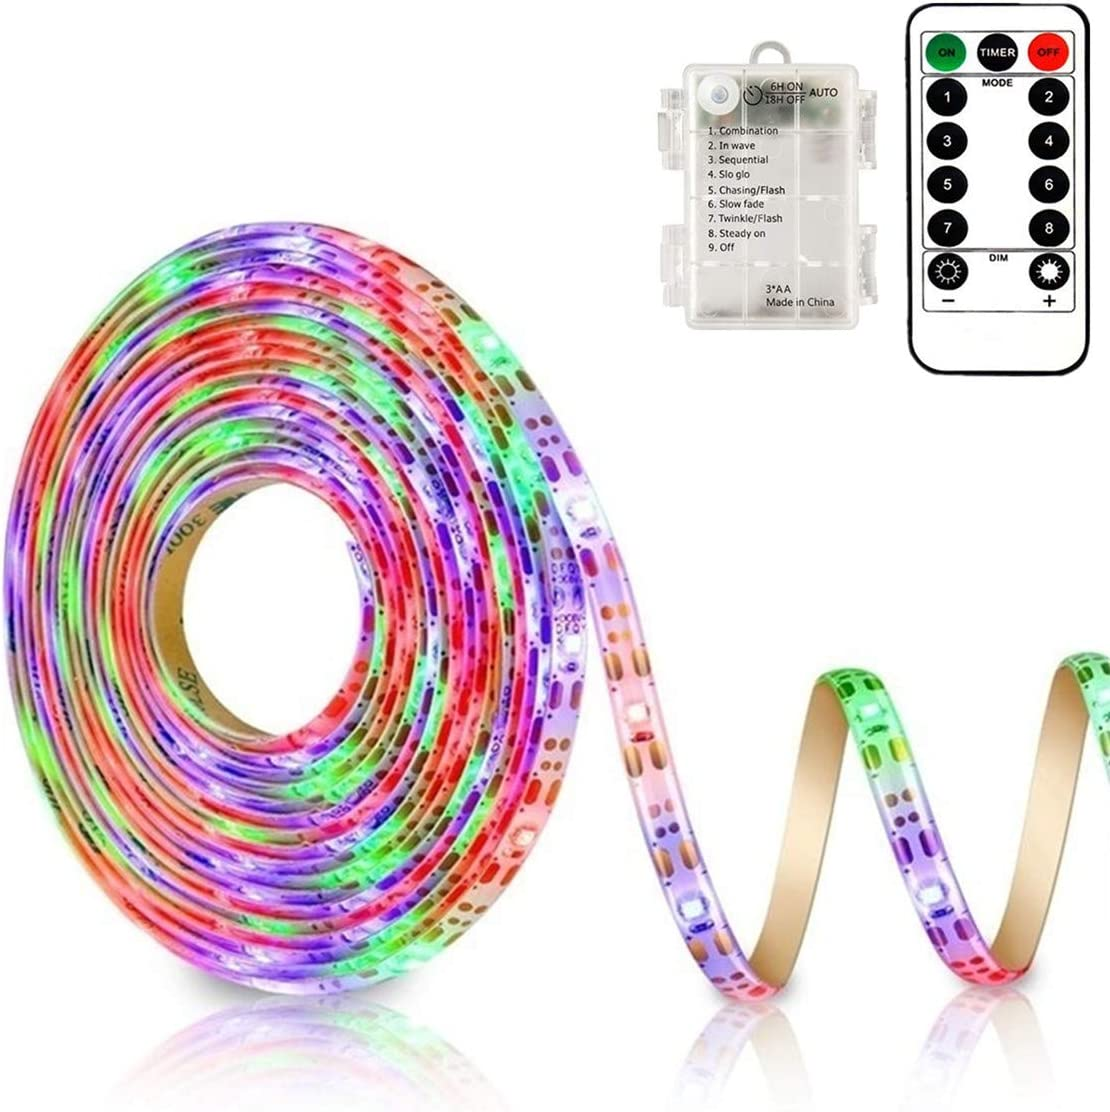 9.8FT 90Led RGB Strip Lights Battery Powered Remote Control, 8 Modes, Dimmable, Timer, Self-Adhesive, Cuttable, Waterproof, for TV Computer Monitor/Screen Decor